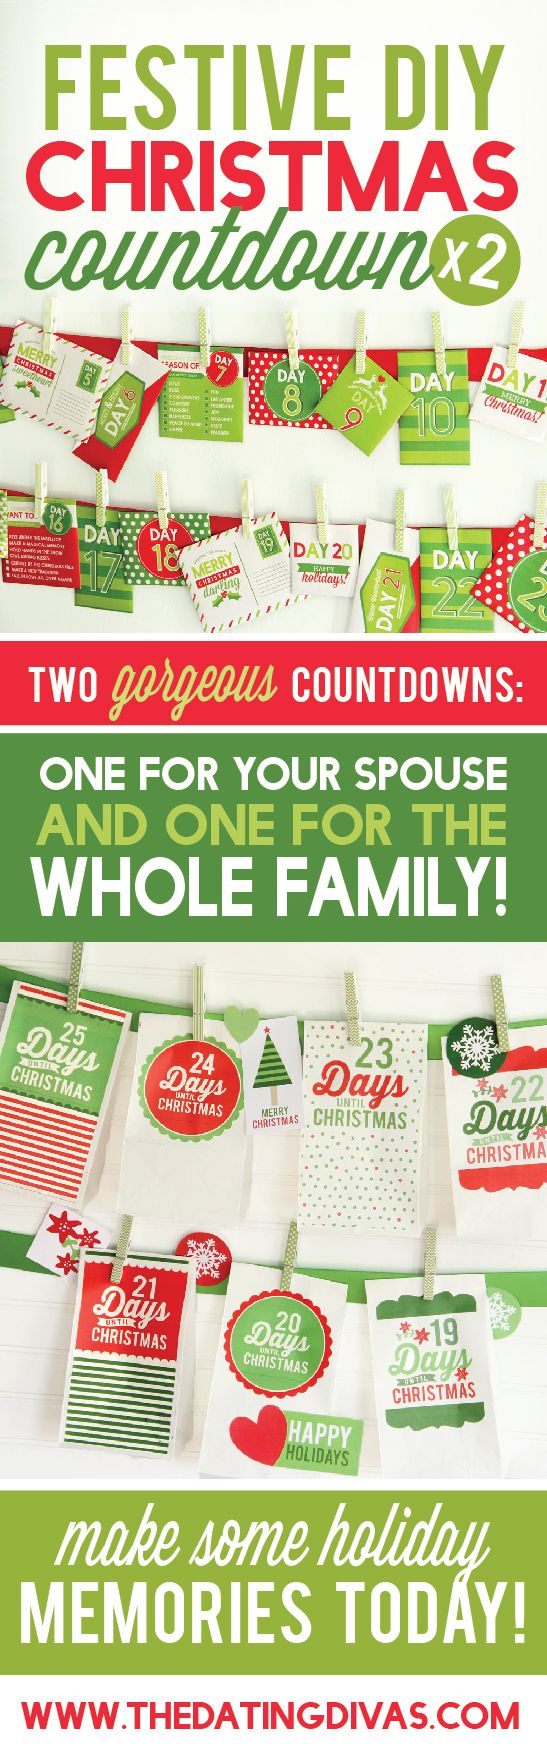 Can't wait to use these darling Christmas countdowns- my hubby and my kids are going to love this! www.TheDatingDivas.com